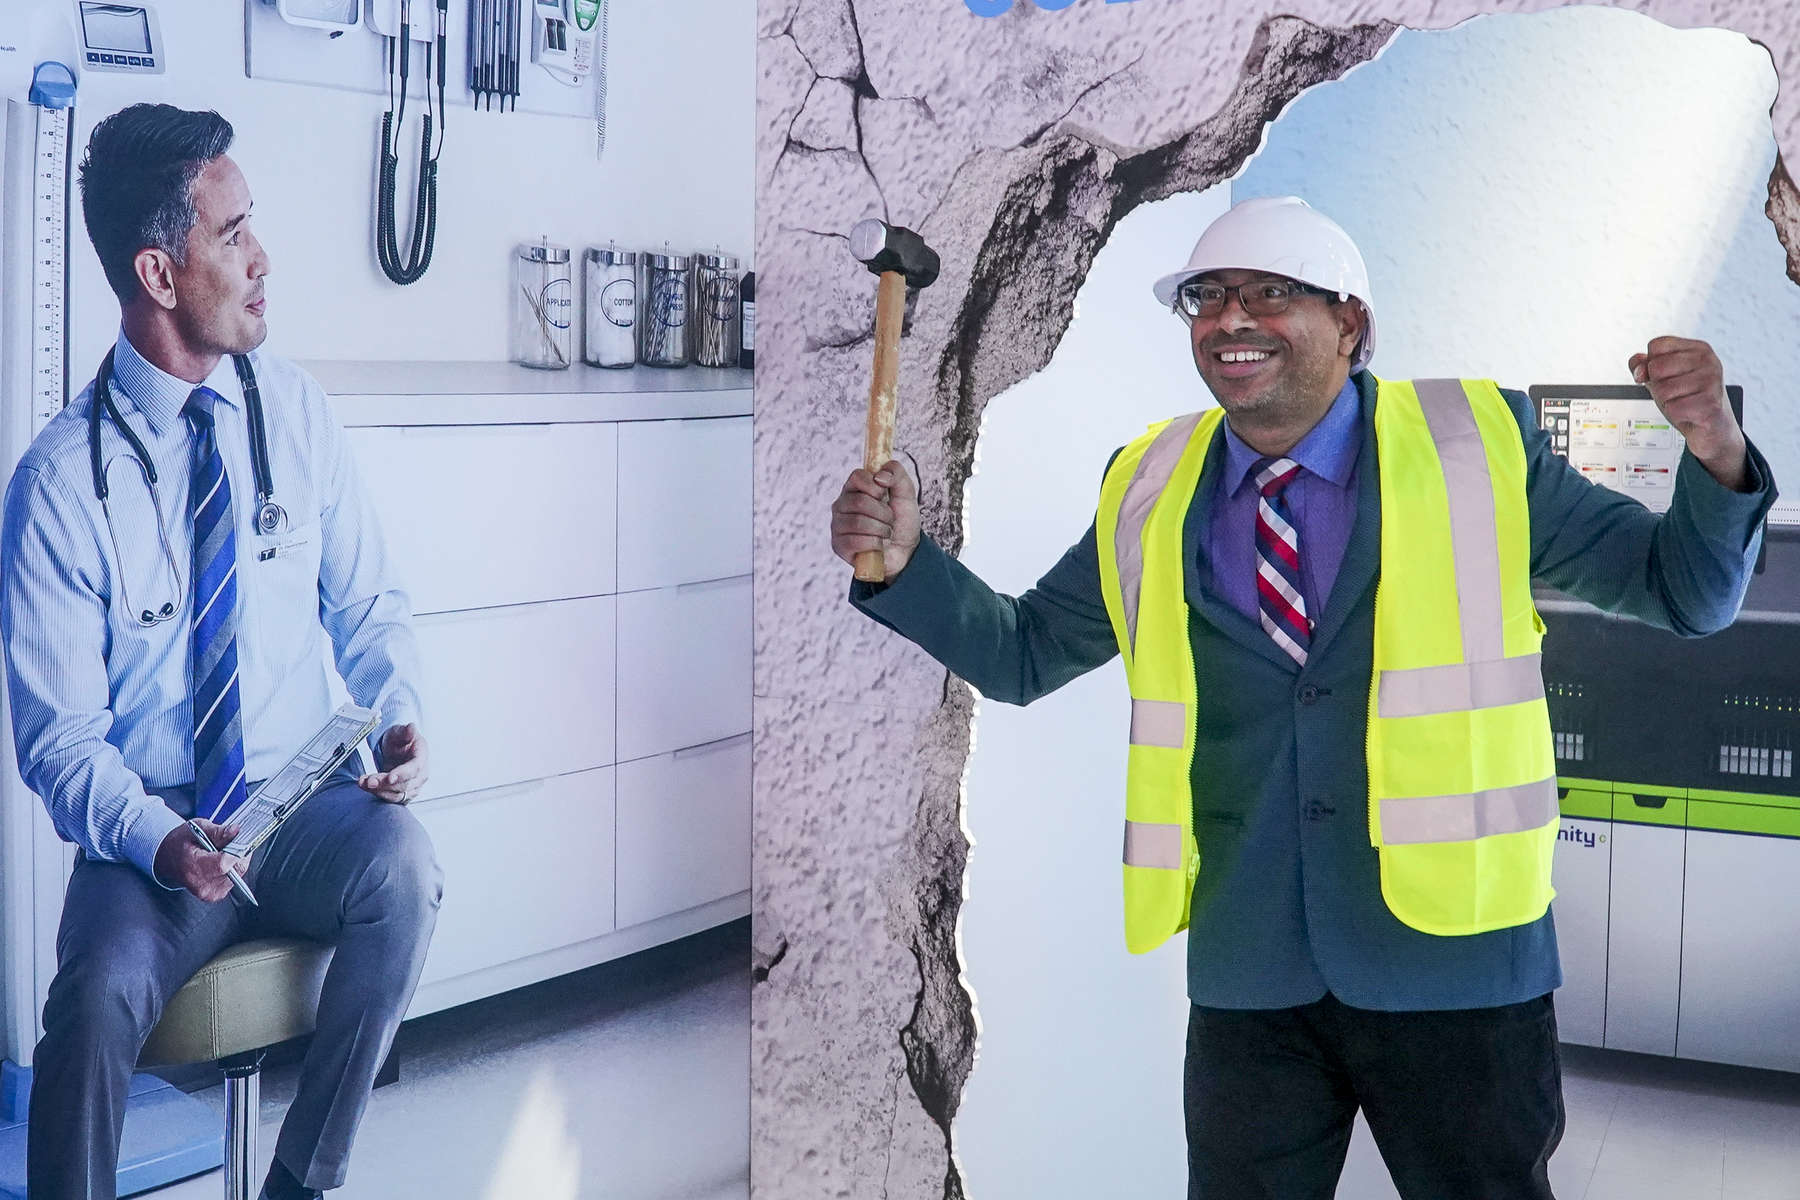 Rocky Pramanik gets his photo taken in construction gear at the Abbott booth in the exhibit hall.